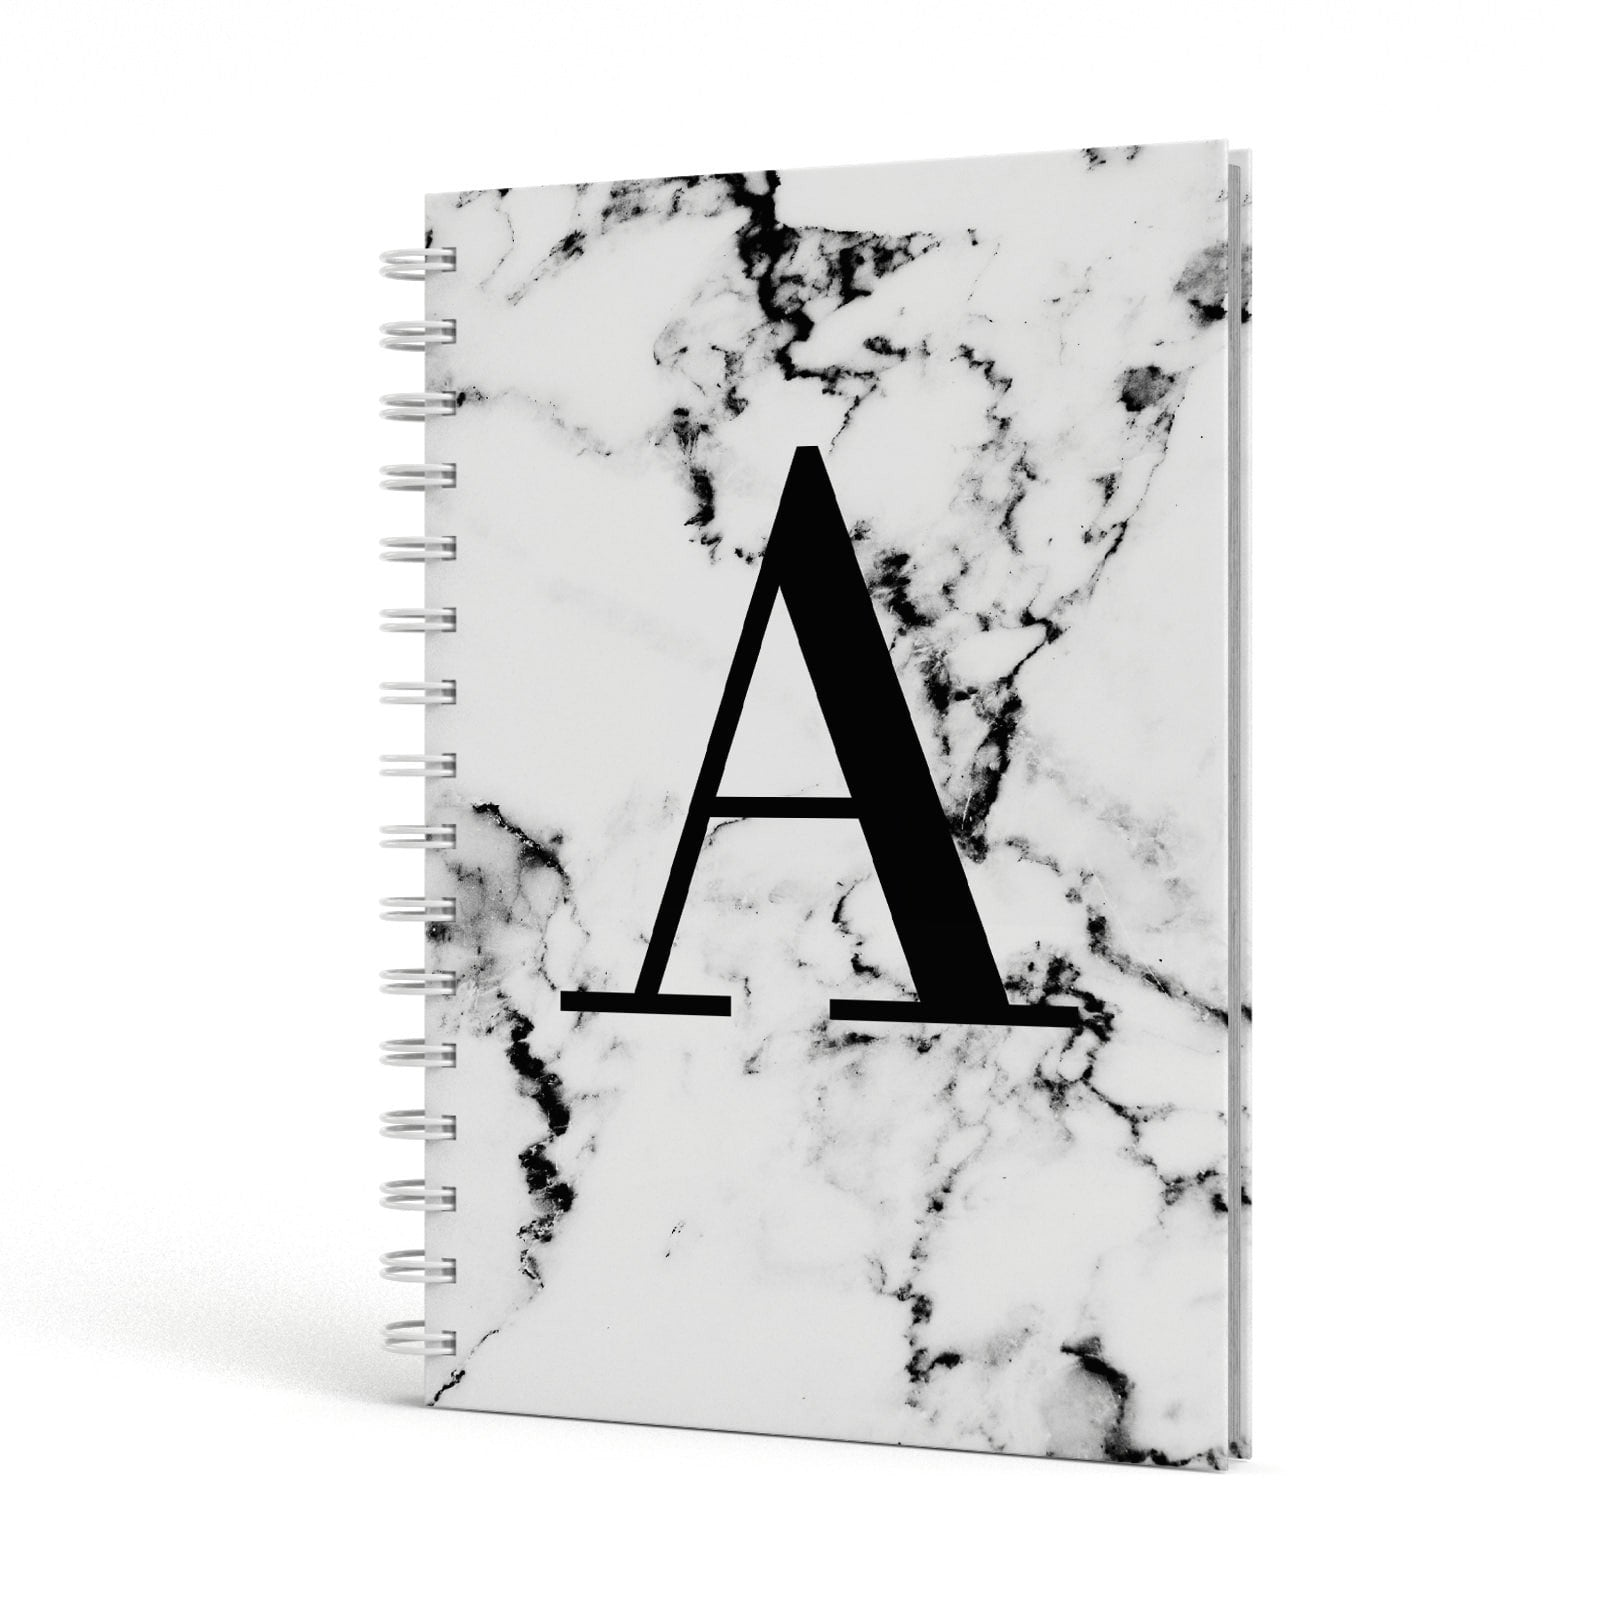 Marble Black Initial Personalised A5 Hardcover Notebook Side View